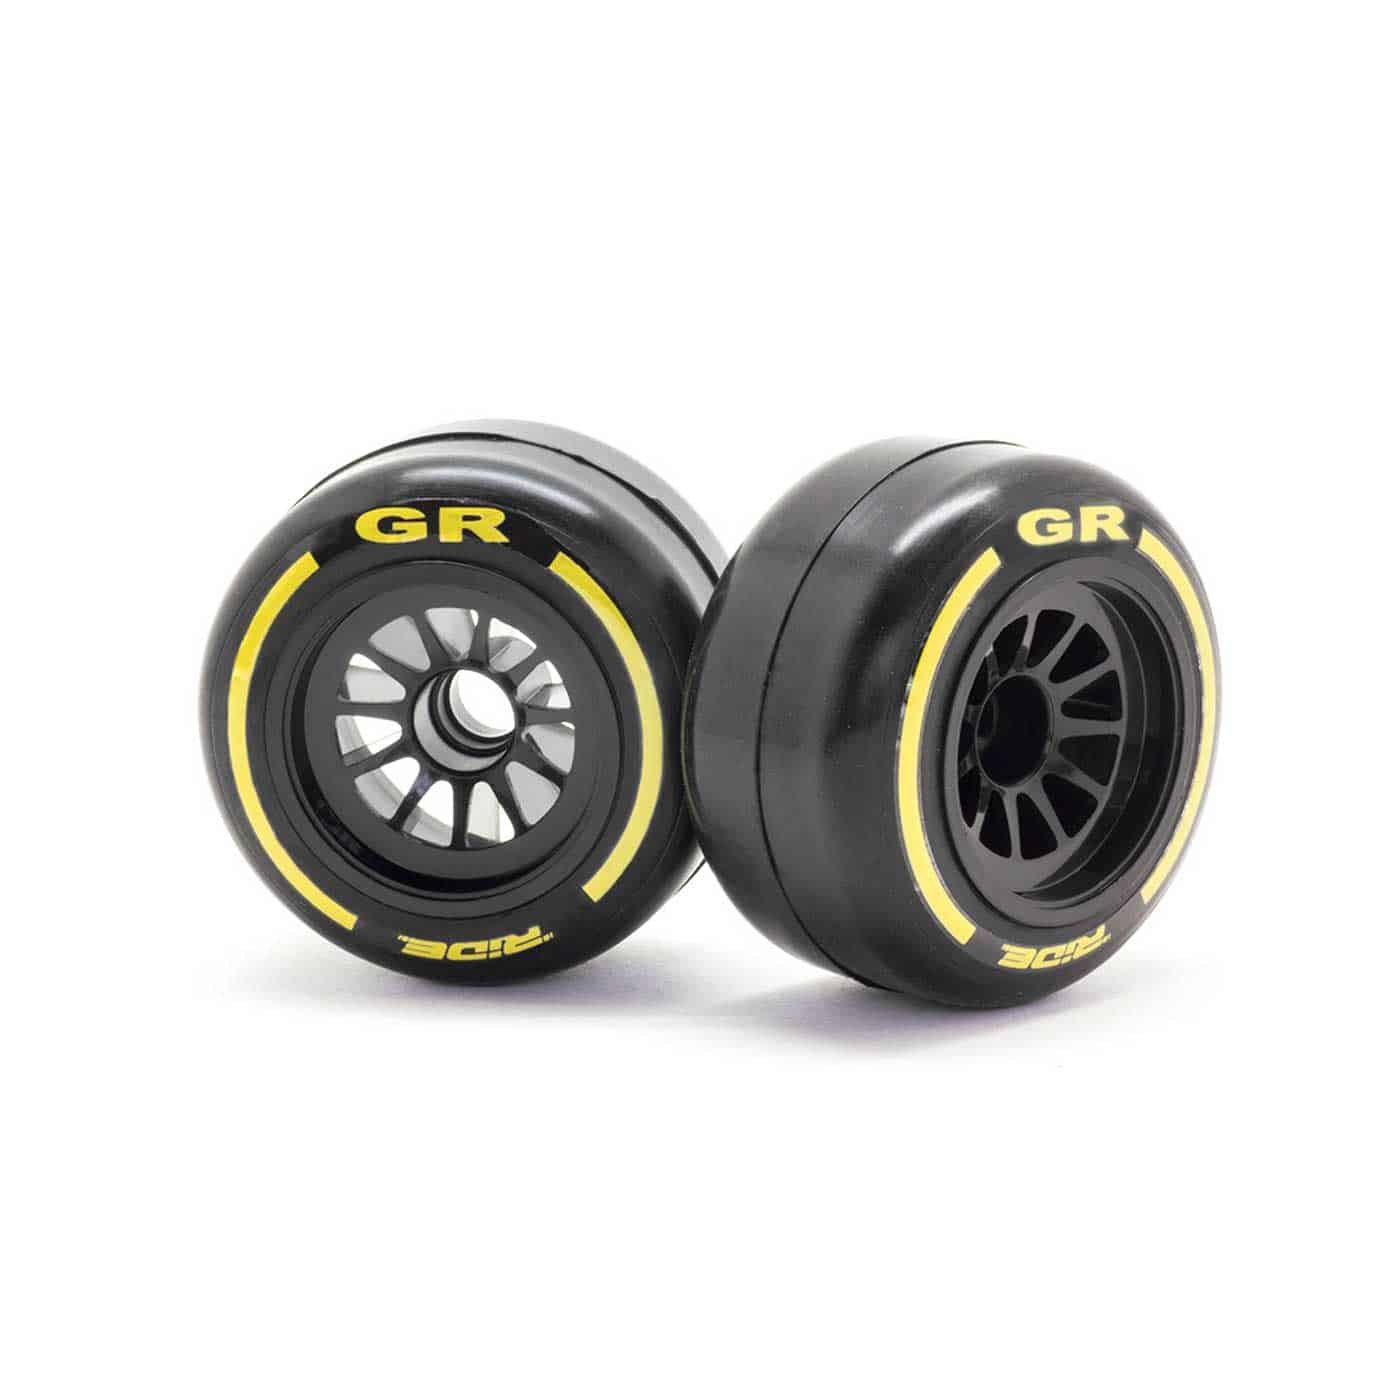 Ride-F1-Front-Rubber-Slick-Tires-GR-Compound-61mm-Preglued-Asphalt